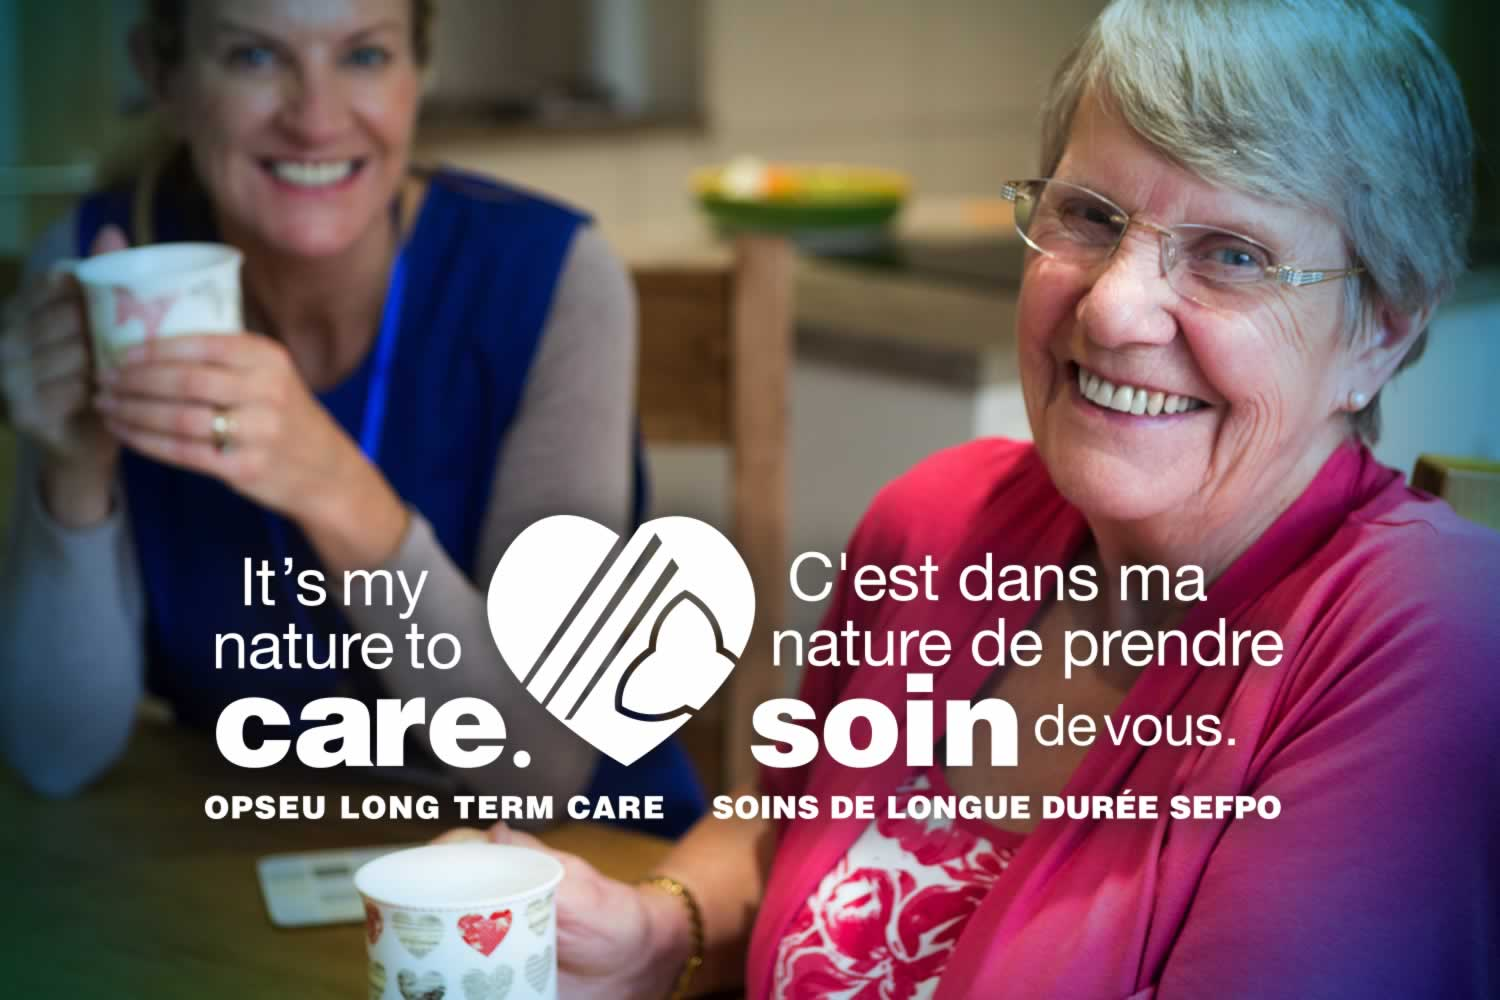 It's my nature to care - OPSEU Long term care / C'est dans ma nature de prendre soin de voice - Soins de langue duree SEFPO